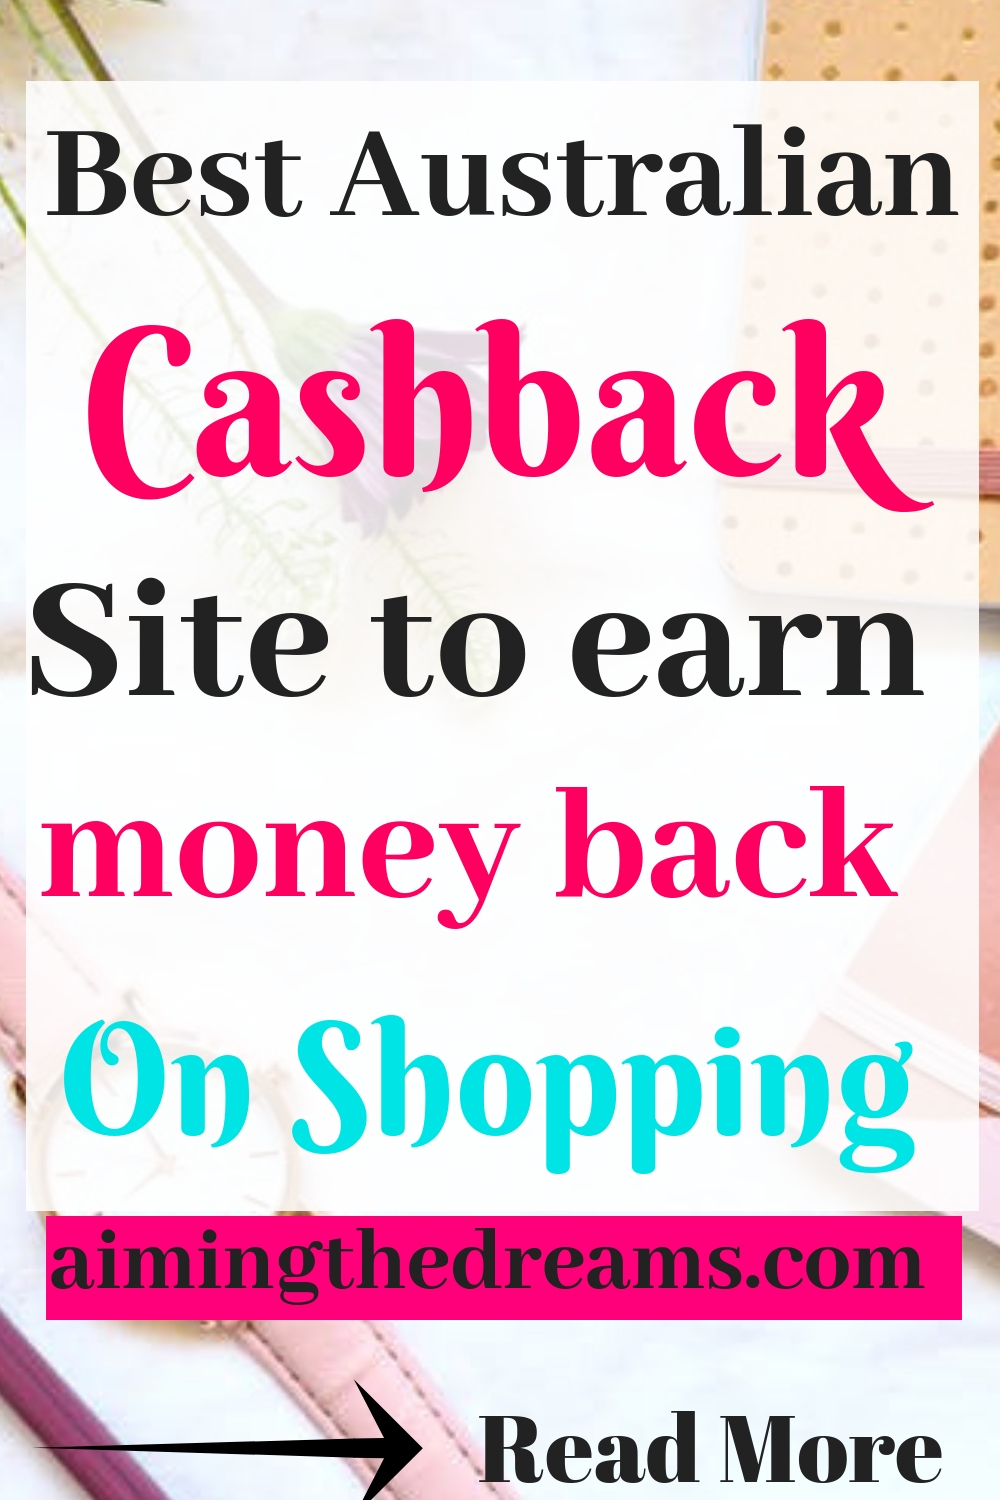 Best cashback site to earm money back on shopping online. Cashrewards let you save money on shopping online. Click to read.